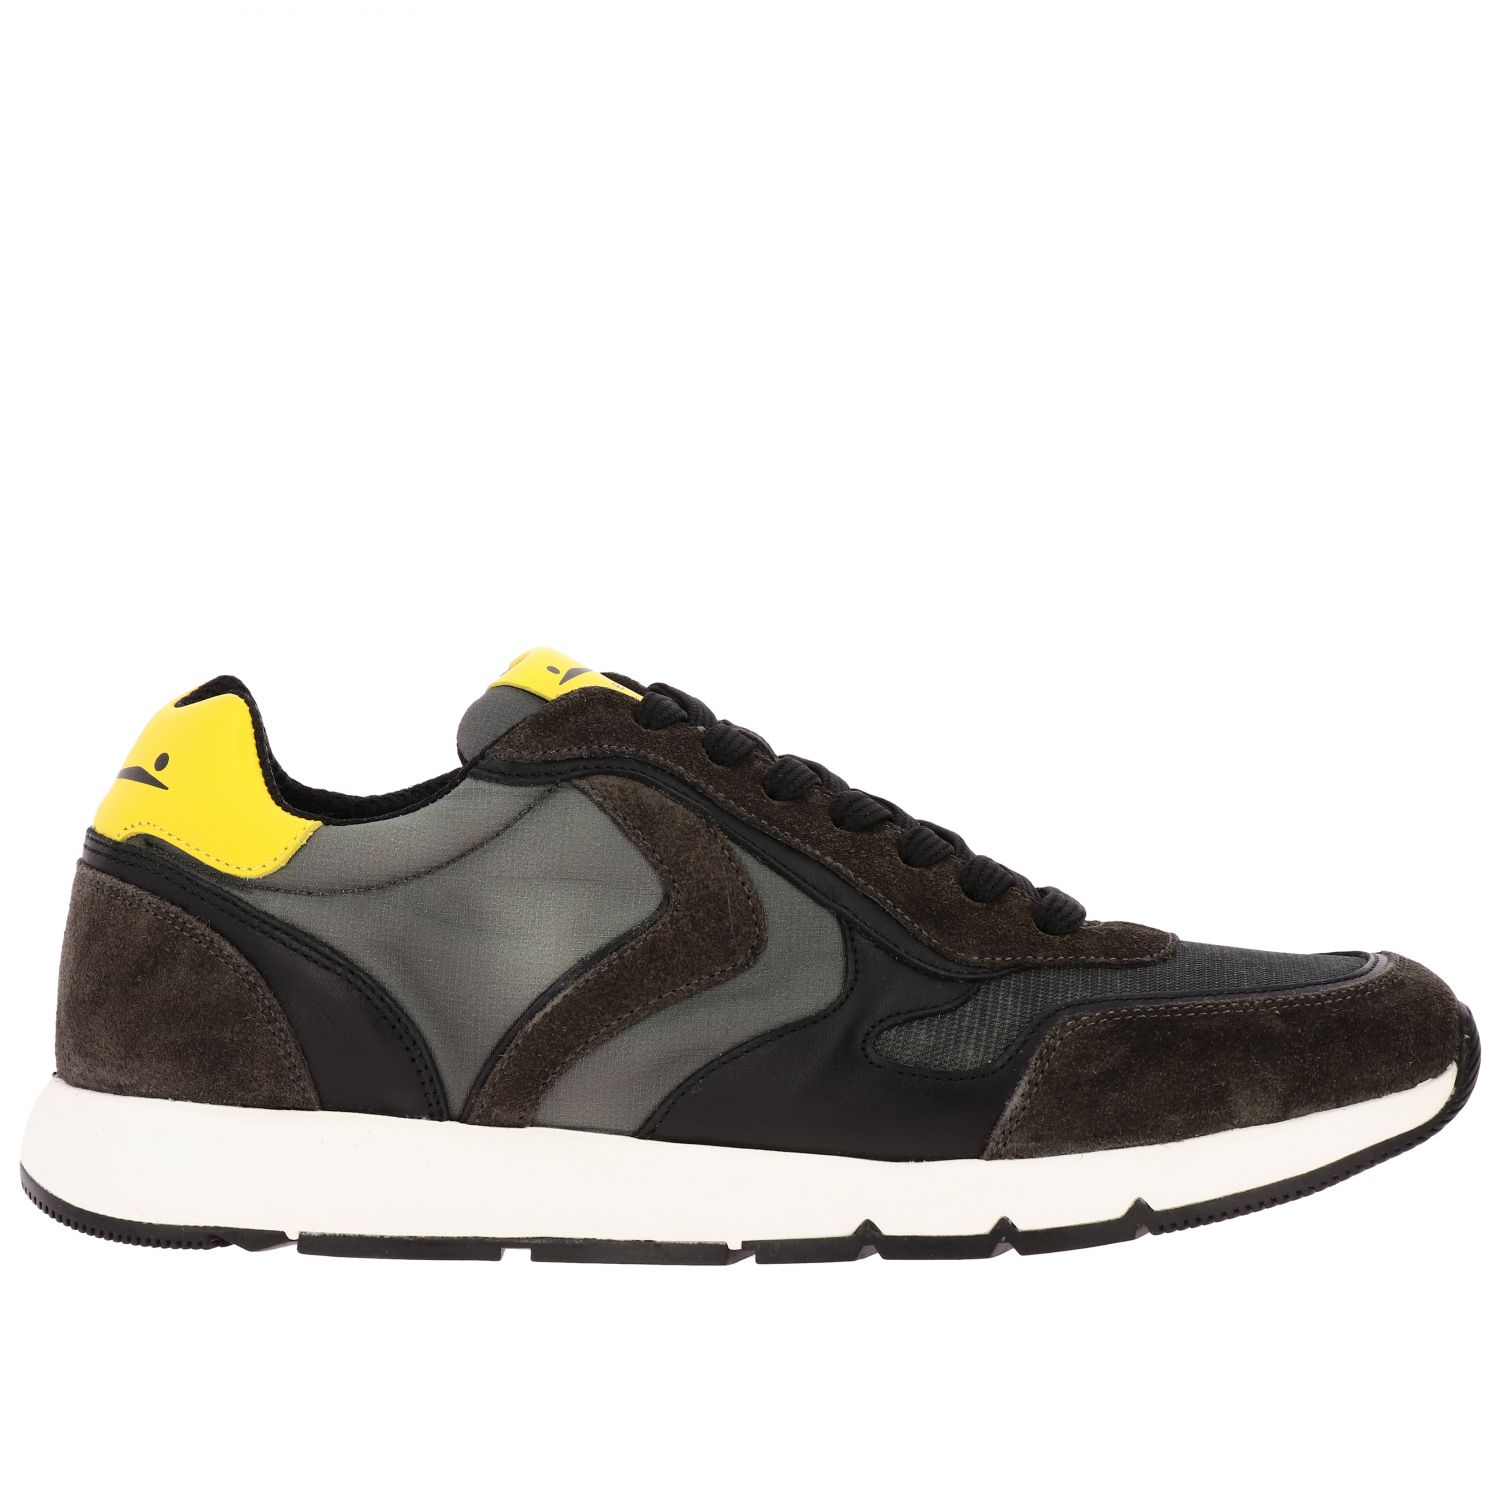 Trainers men Voile Blanche charcoal 1